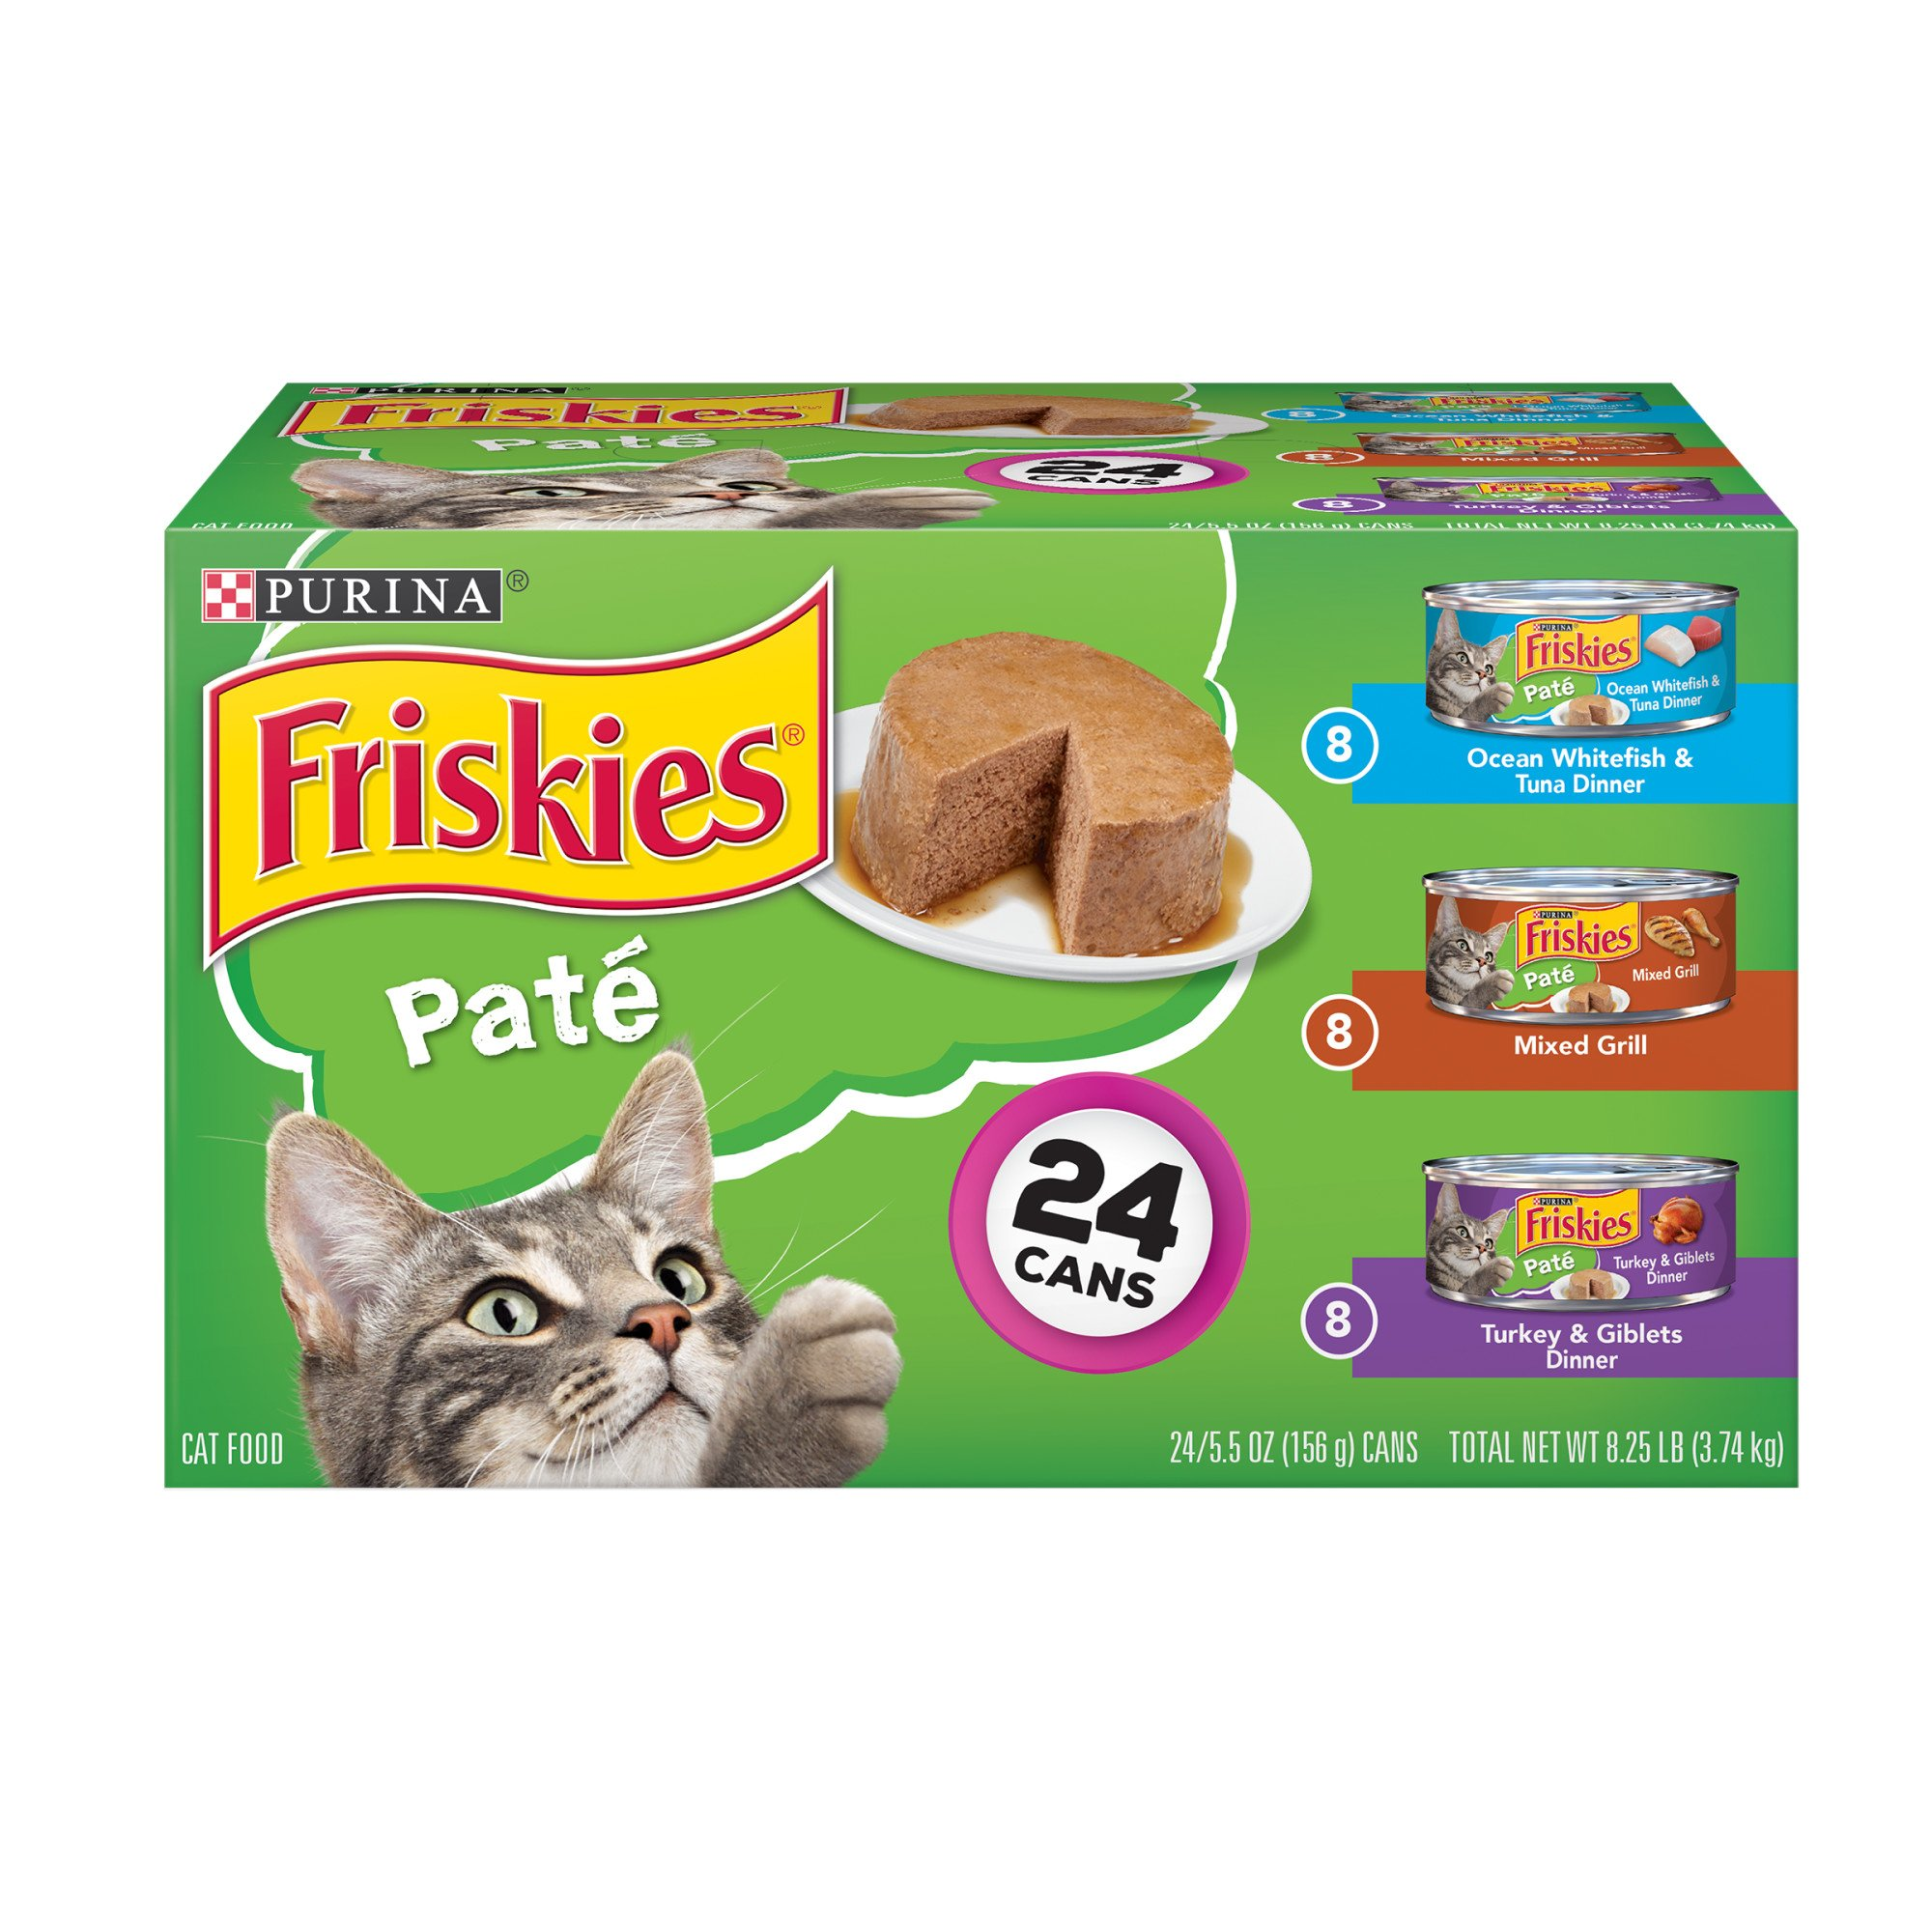 Friskies Mixed Grill, Ocean Whitefish & Tuna Dinner & Turkey & Giblets Dinner Loaf Variety Pack Canned Cat Food